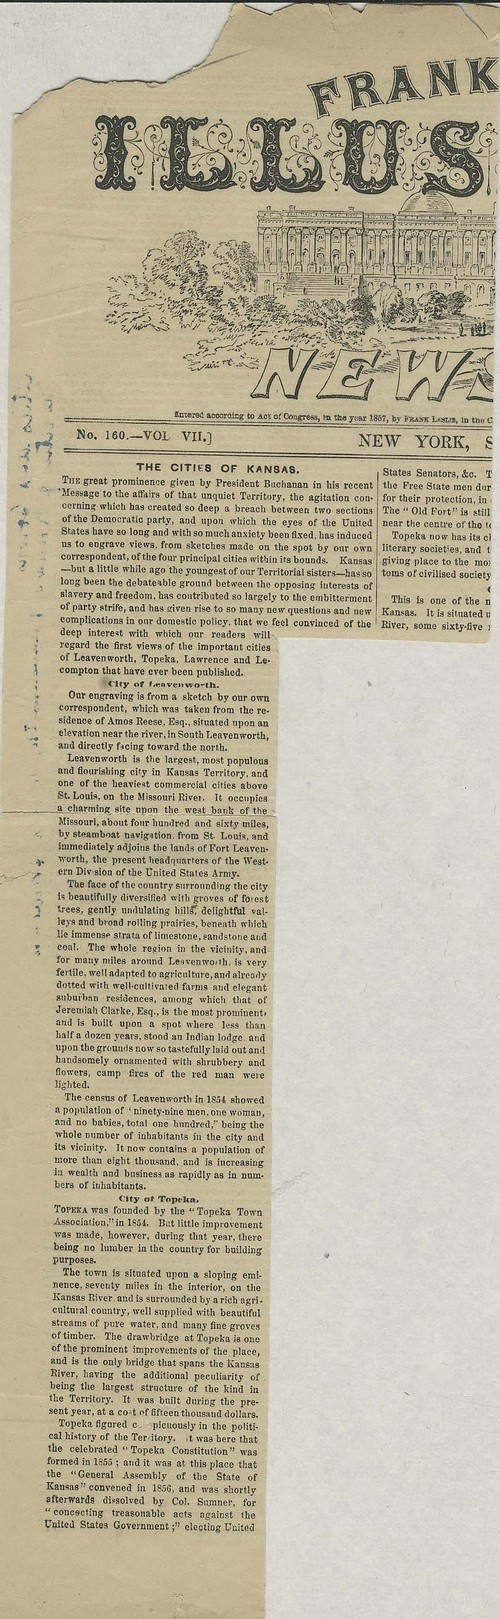 Frank Leslie's Illustrated newspaper clipping - Page